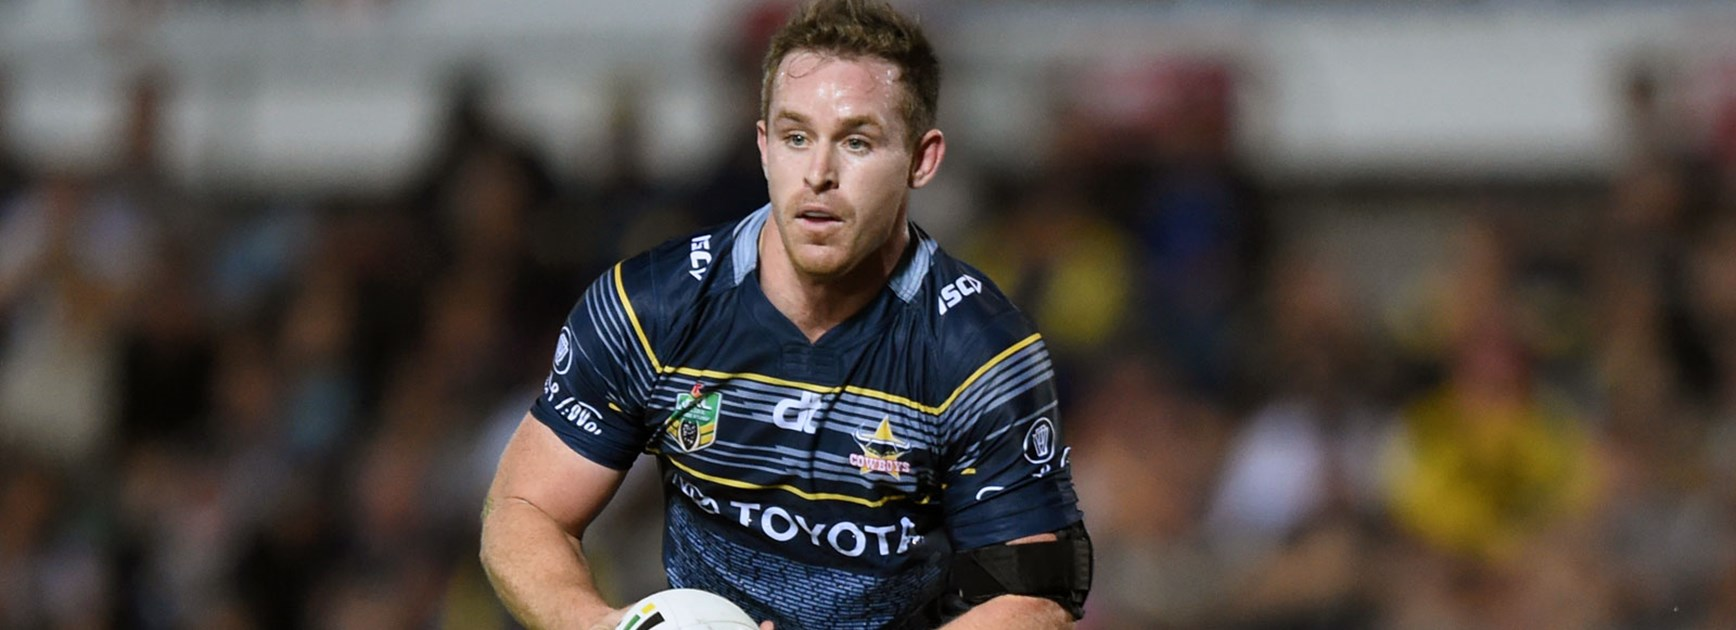 Cowboys five-eighth Michael Morgan stepped up to take some of the pressure off Johnathan Thurston in Round 24.